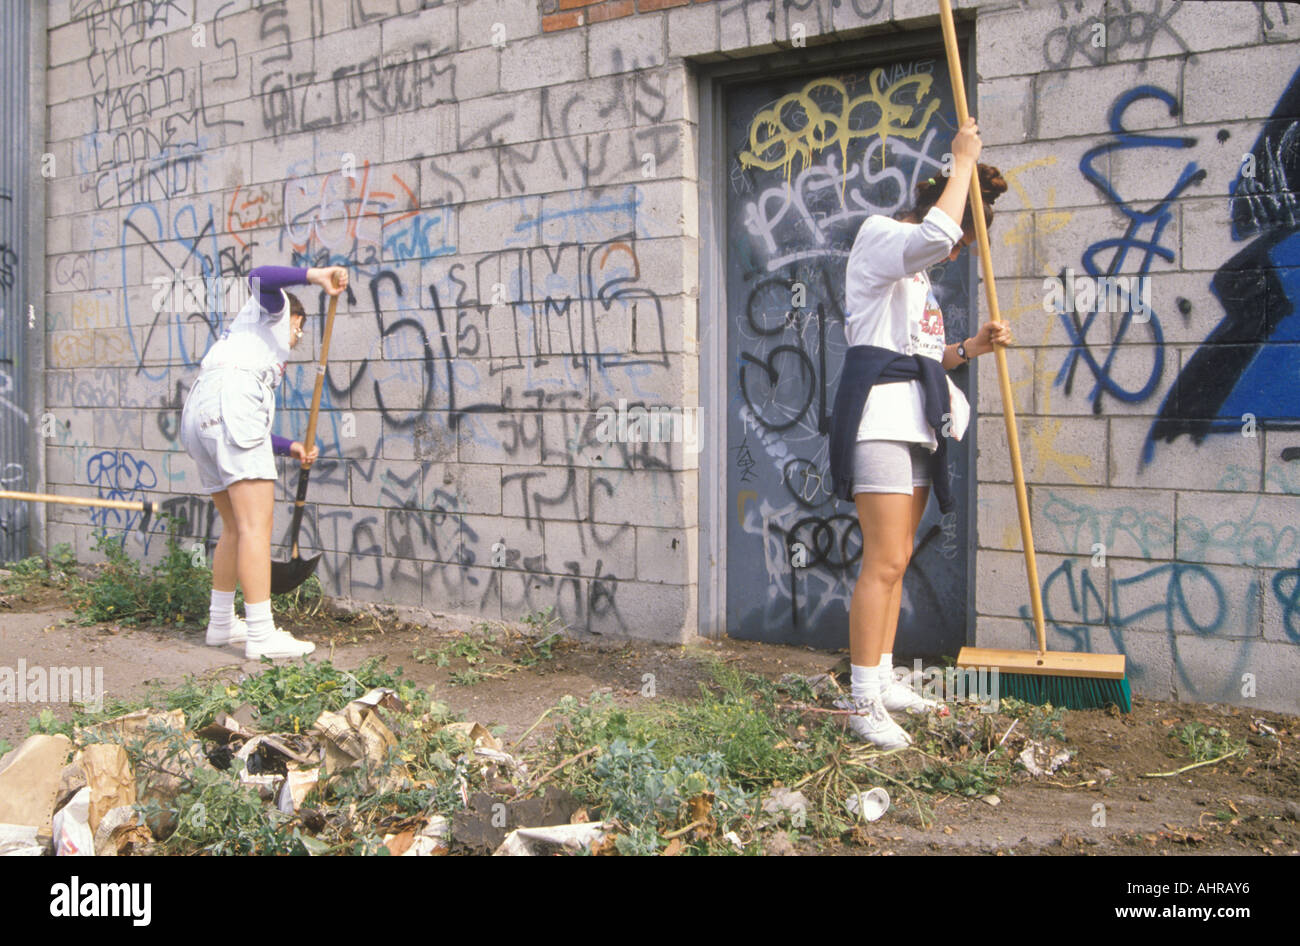 A group of young people participating in community cleanup by sweeping an alley - Stock Image